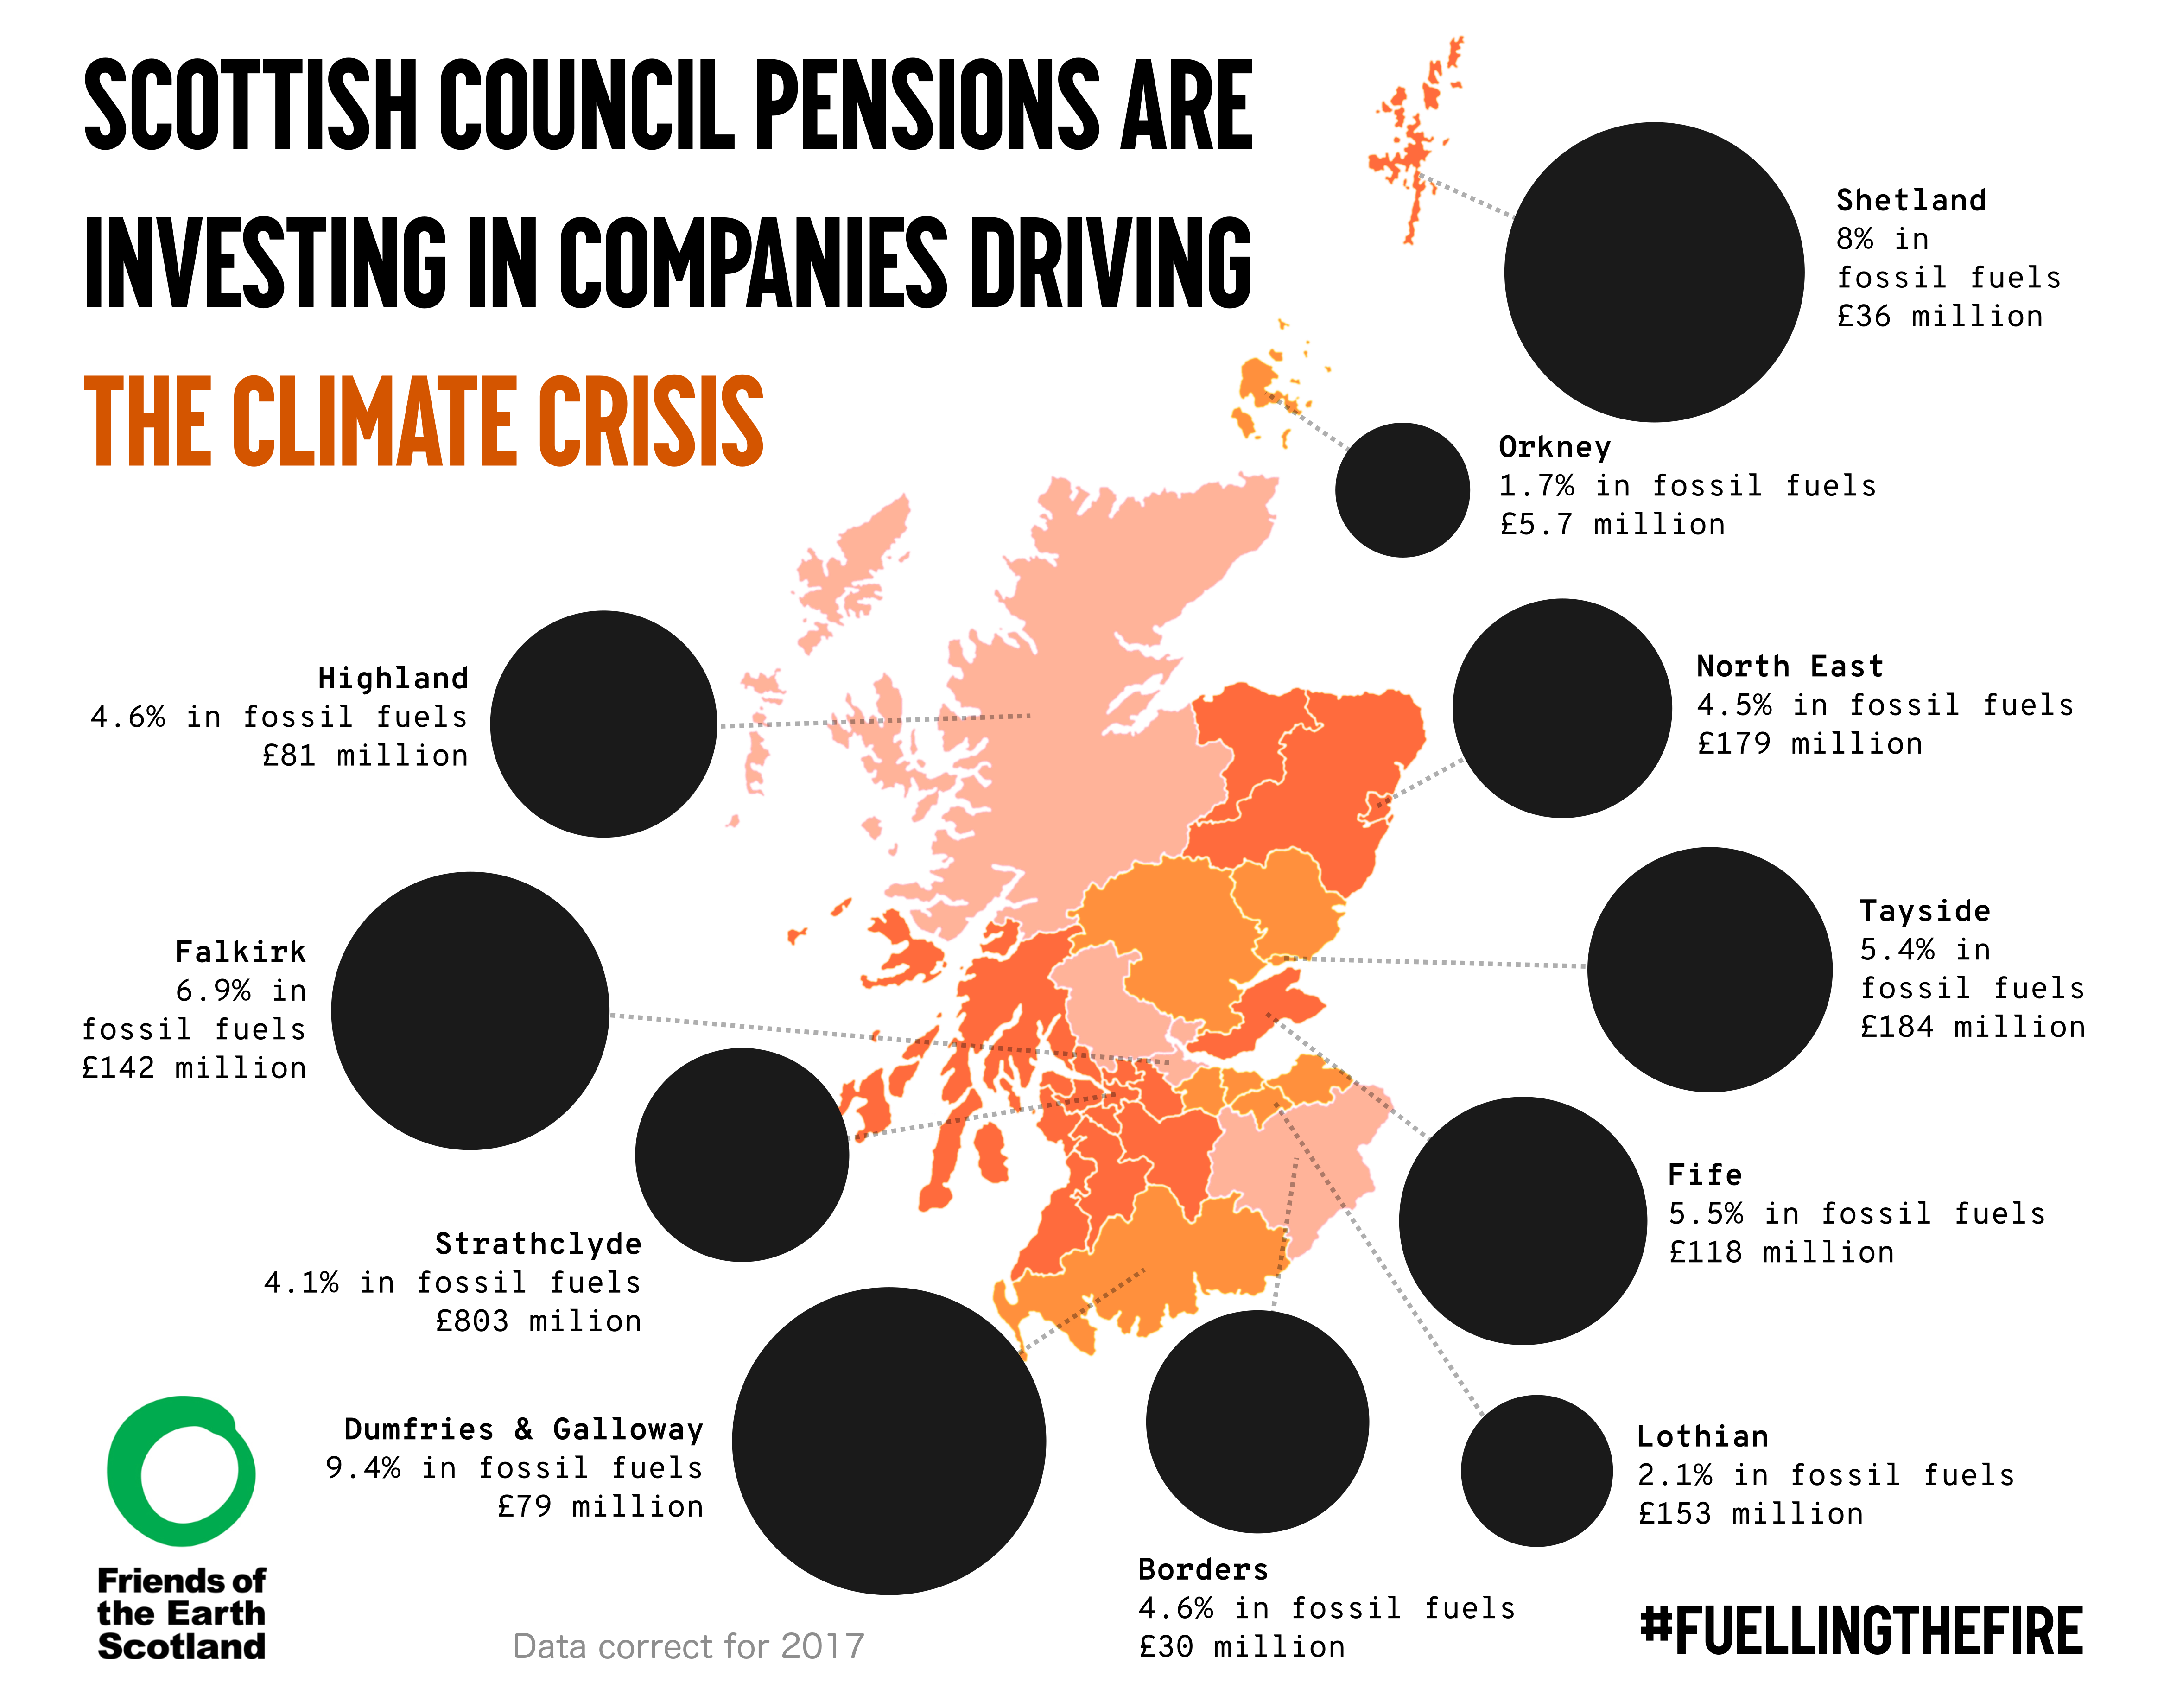 councils are gambling on fossil fuels friends of the earth scotland